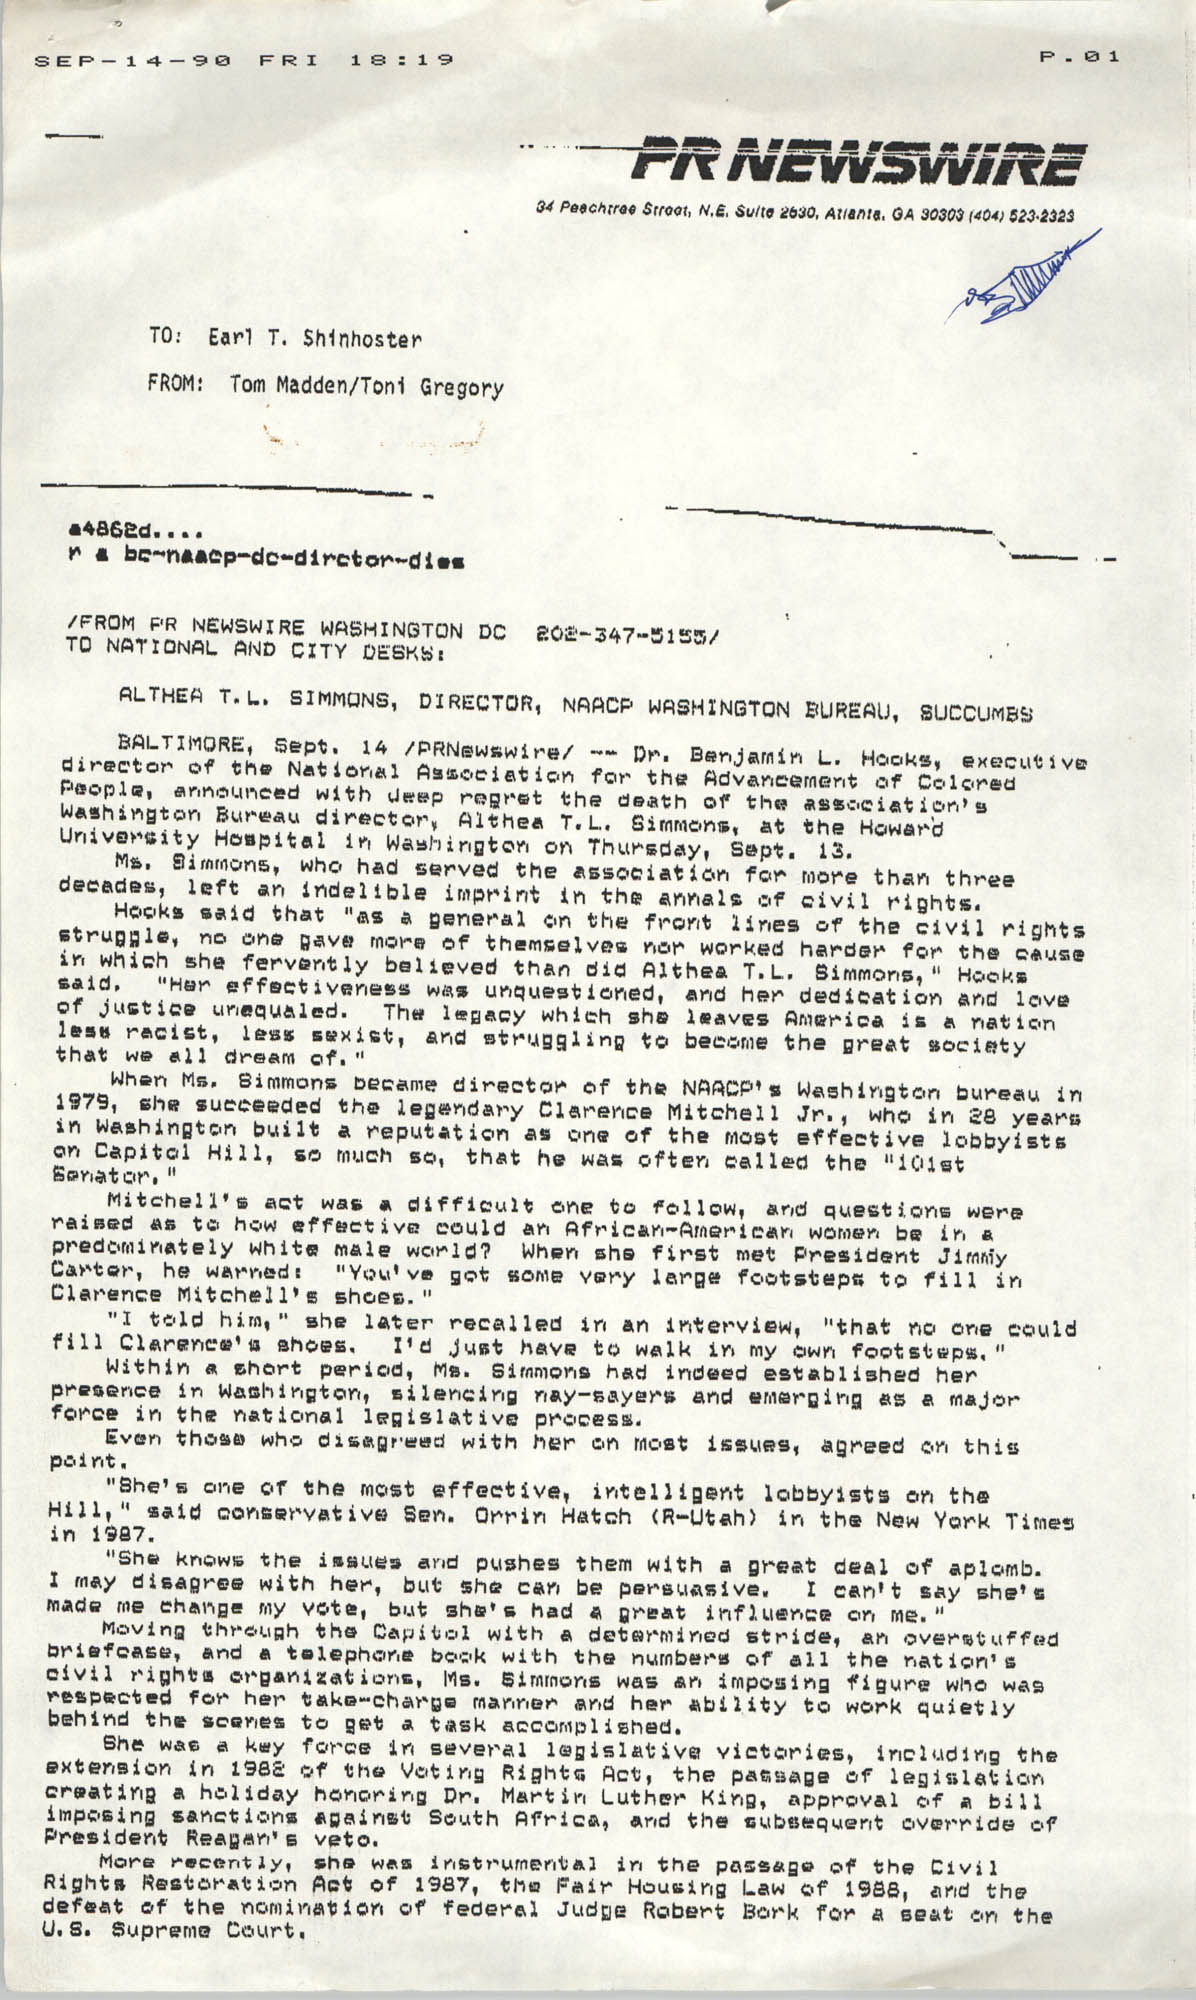 PR Newswire from Tom Madden and Toni Gregory to Earl T. Shinhoster, September 14, 1990